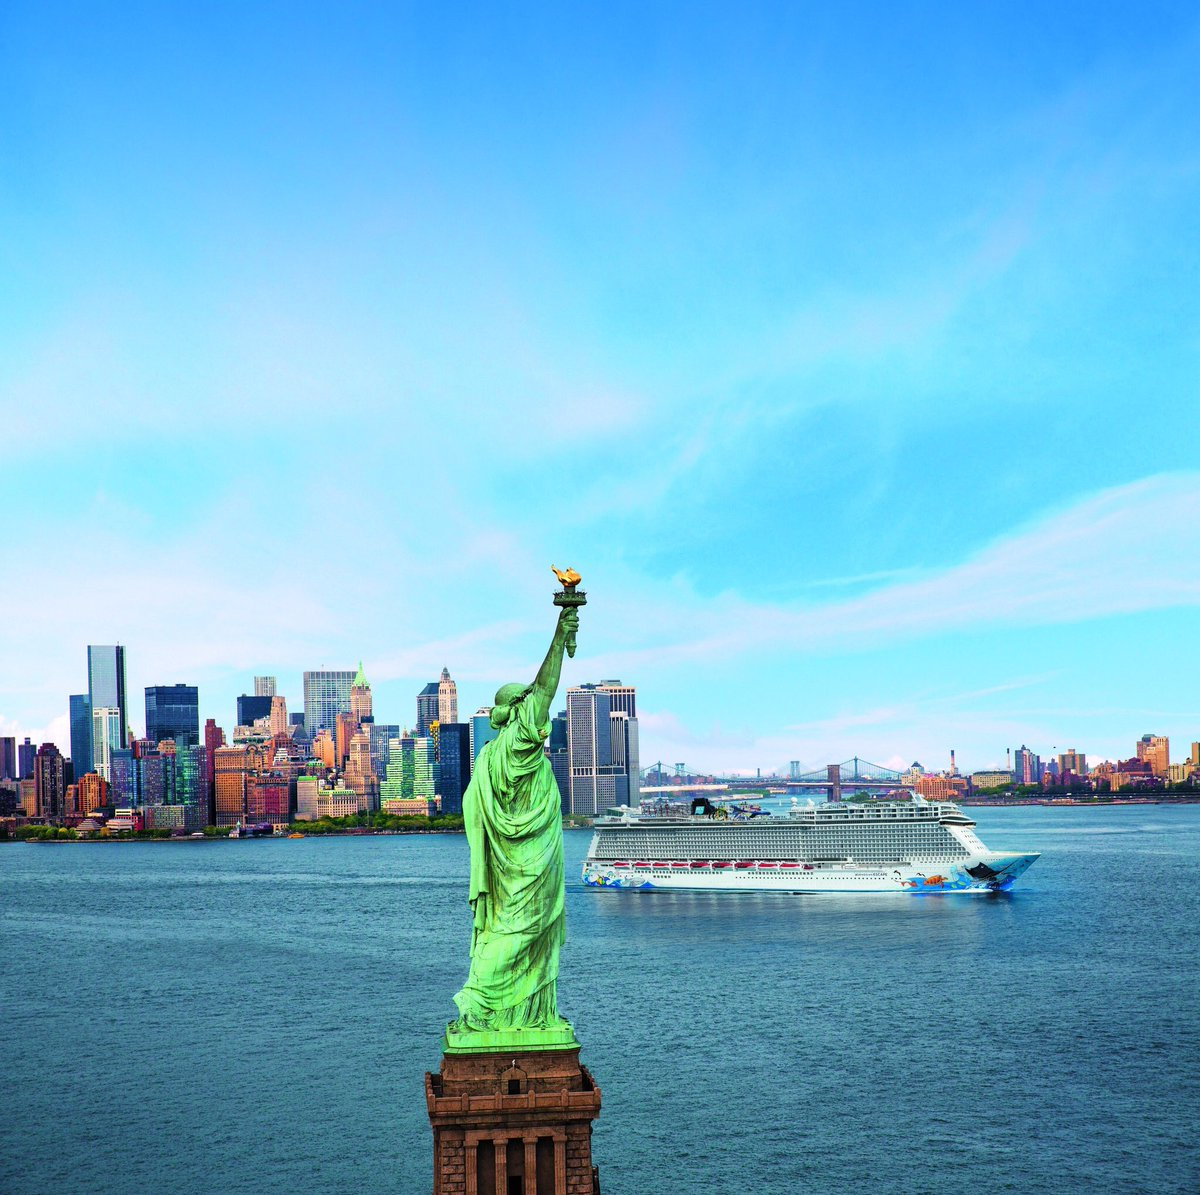 From Miami to the Big Apple, Norwegian Escape is now sailing from NYC! https://t.co/BEnImB8y1m https://t.co/KM4o8UInGY